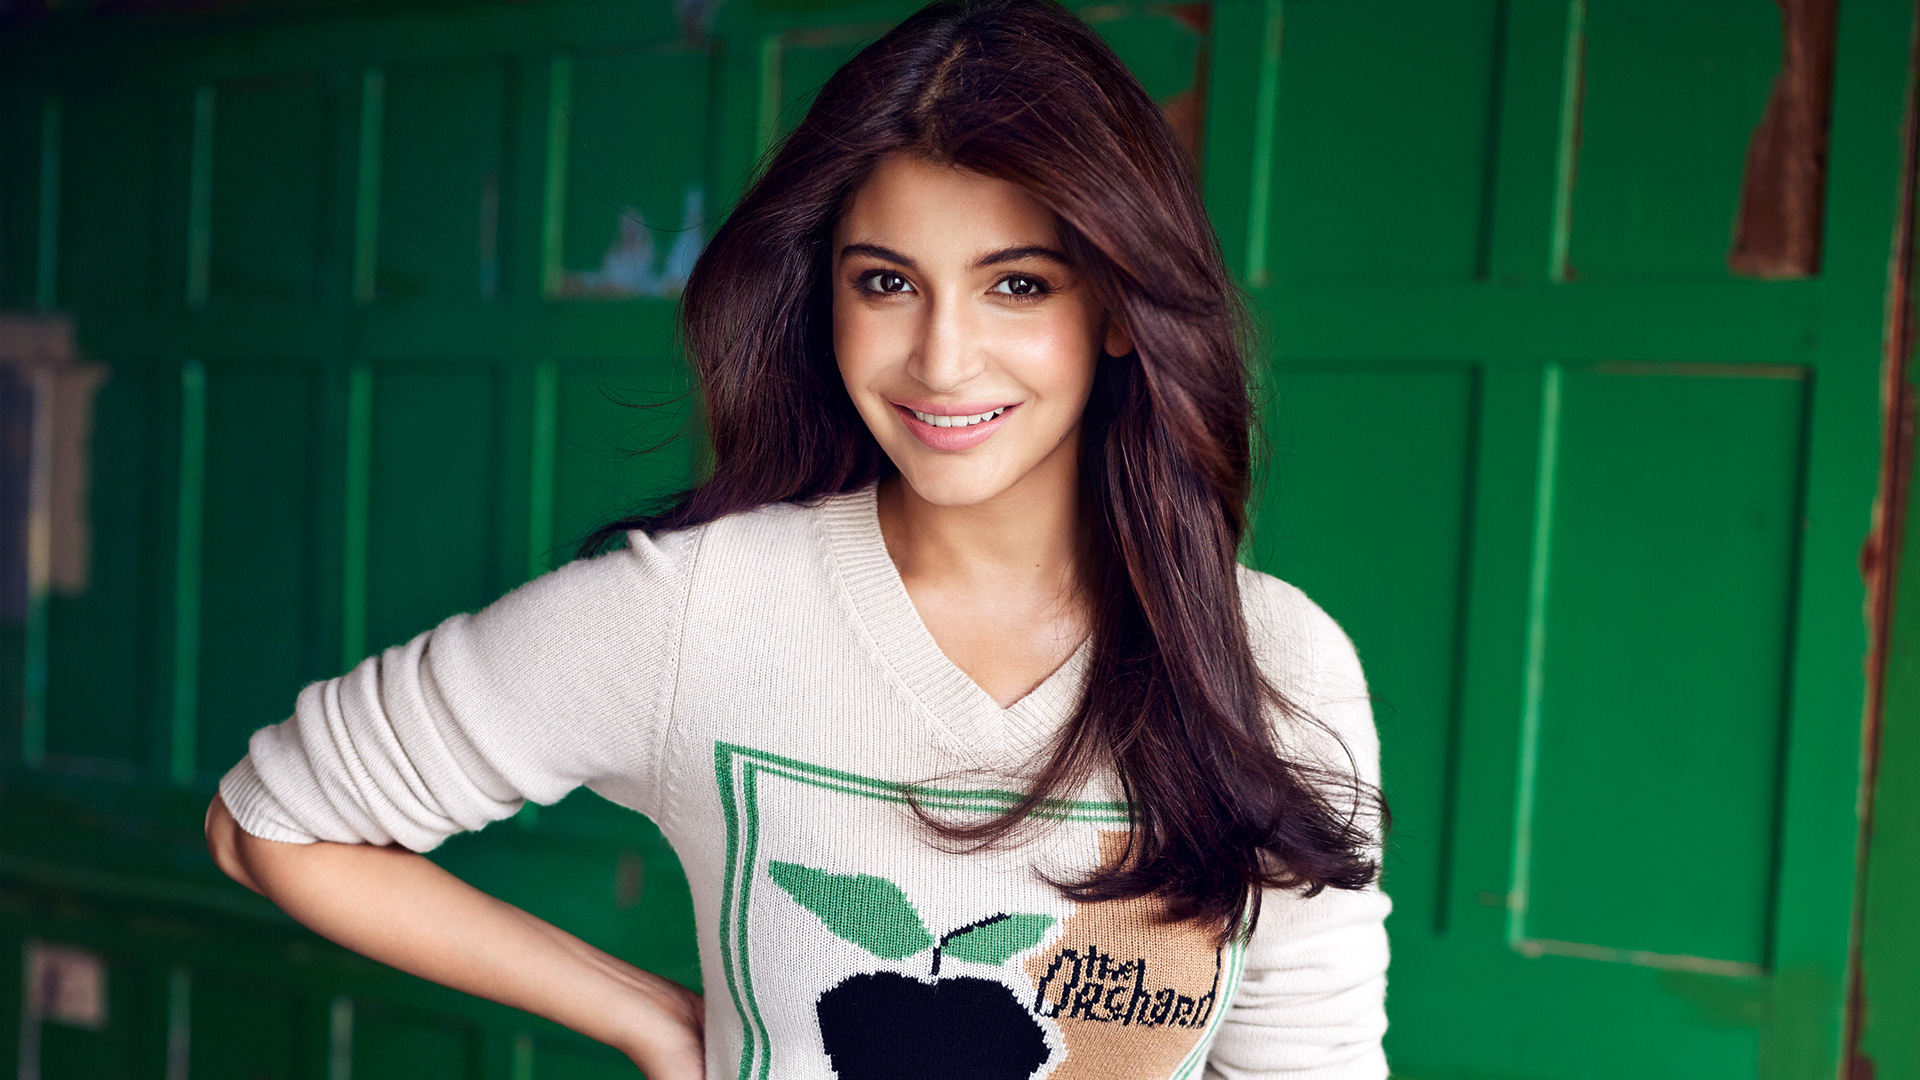 anushka sharma vogue 2016, hd indian celebrities, 4k wallpapers